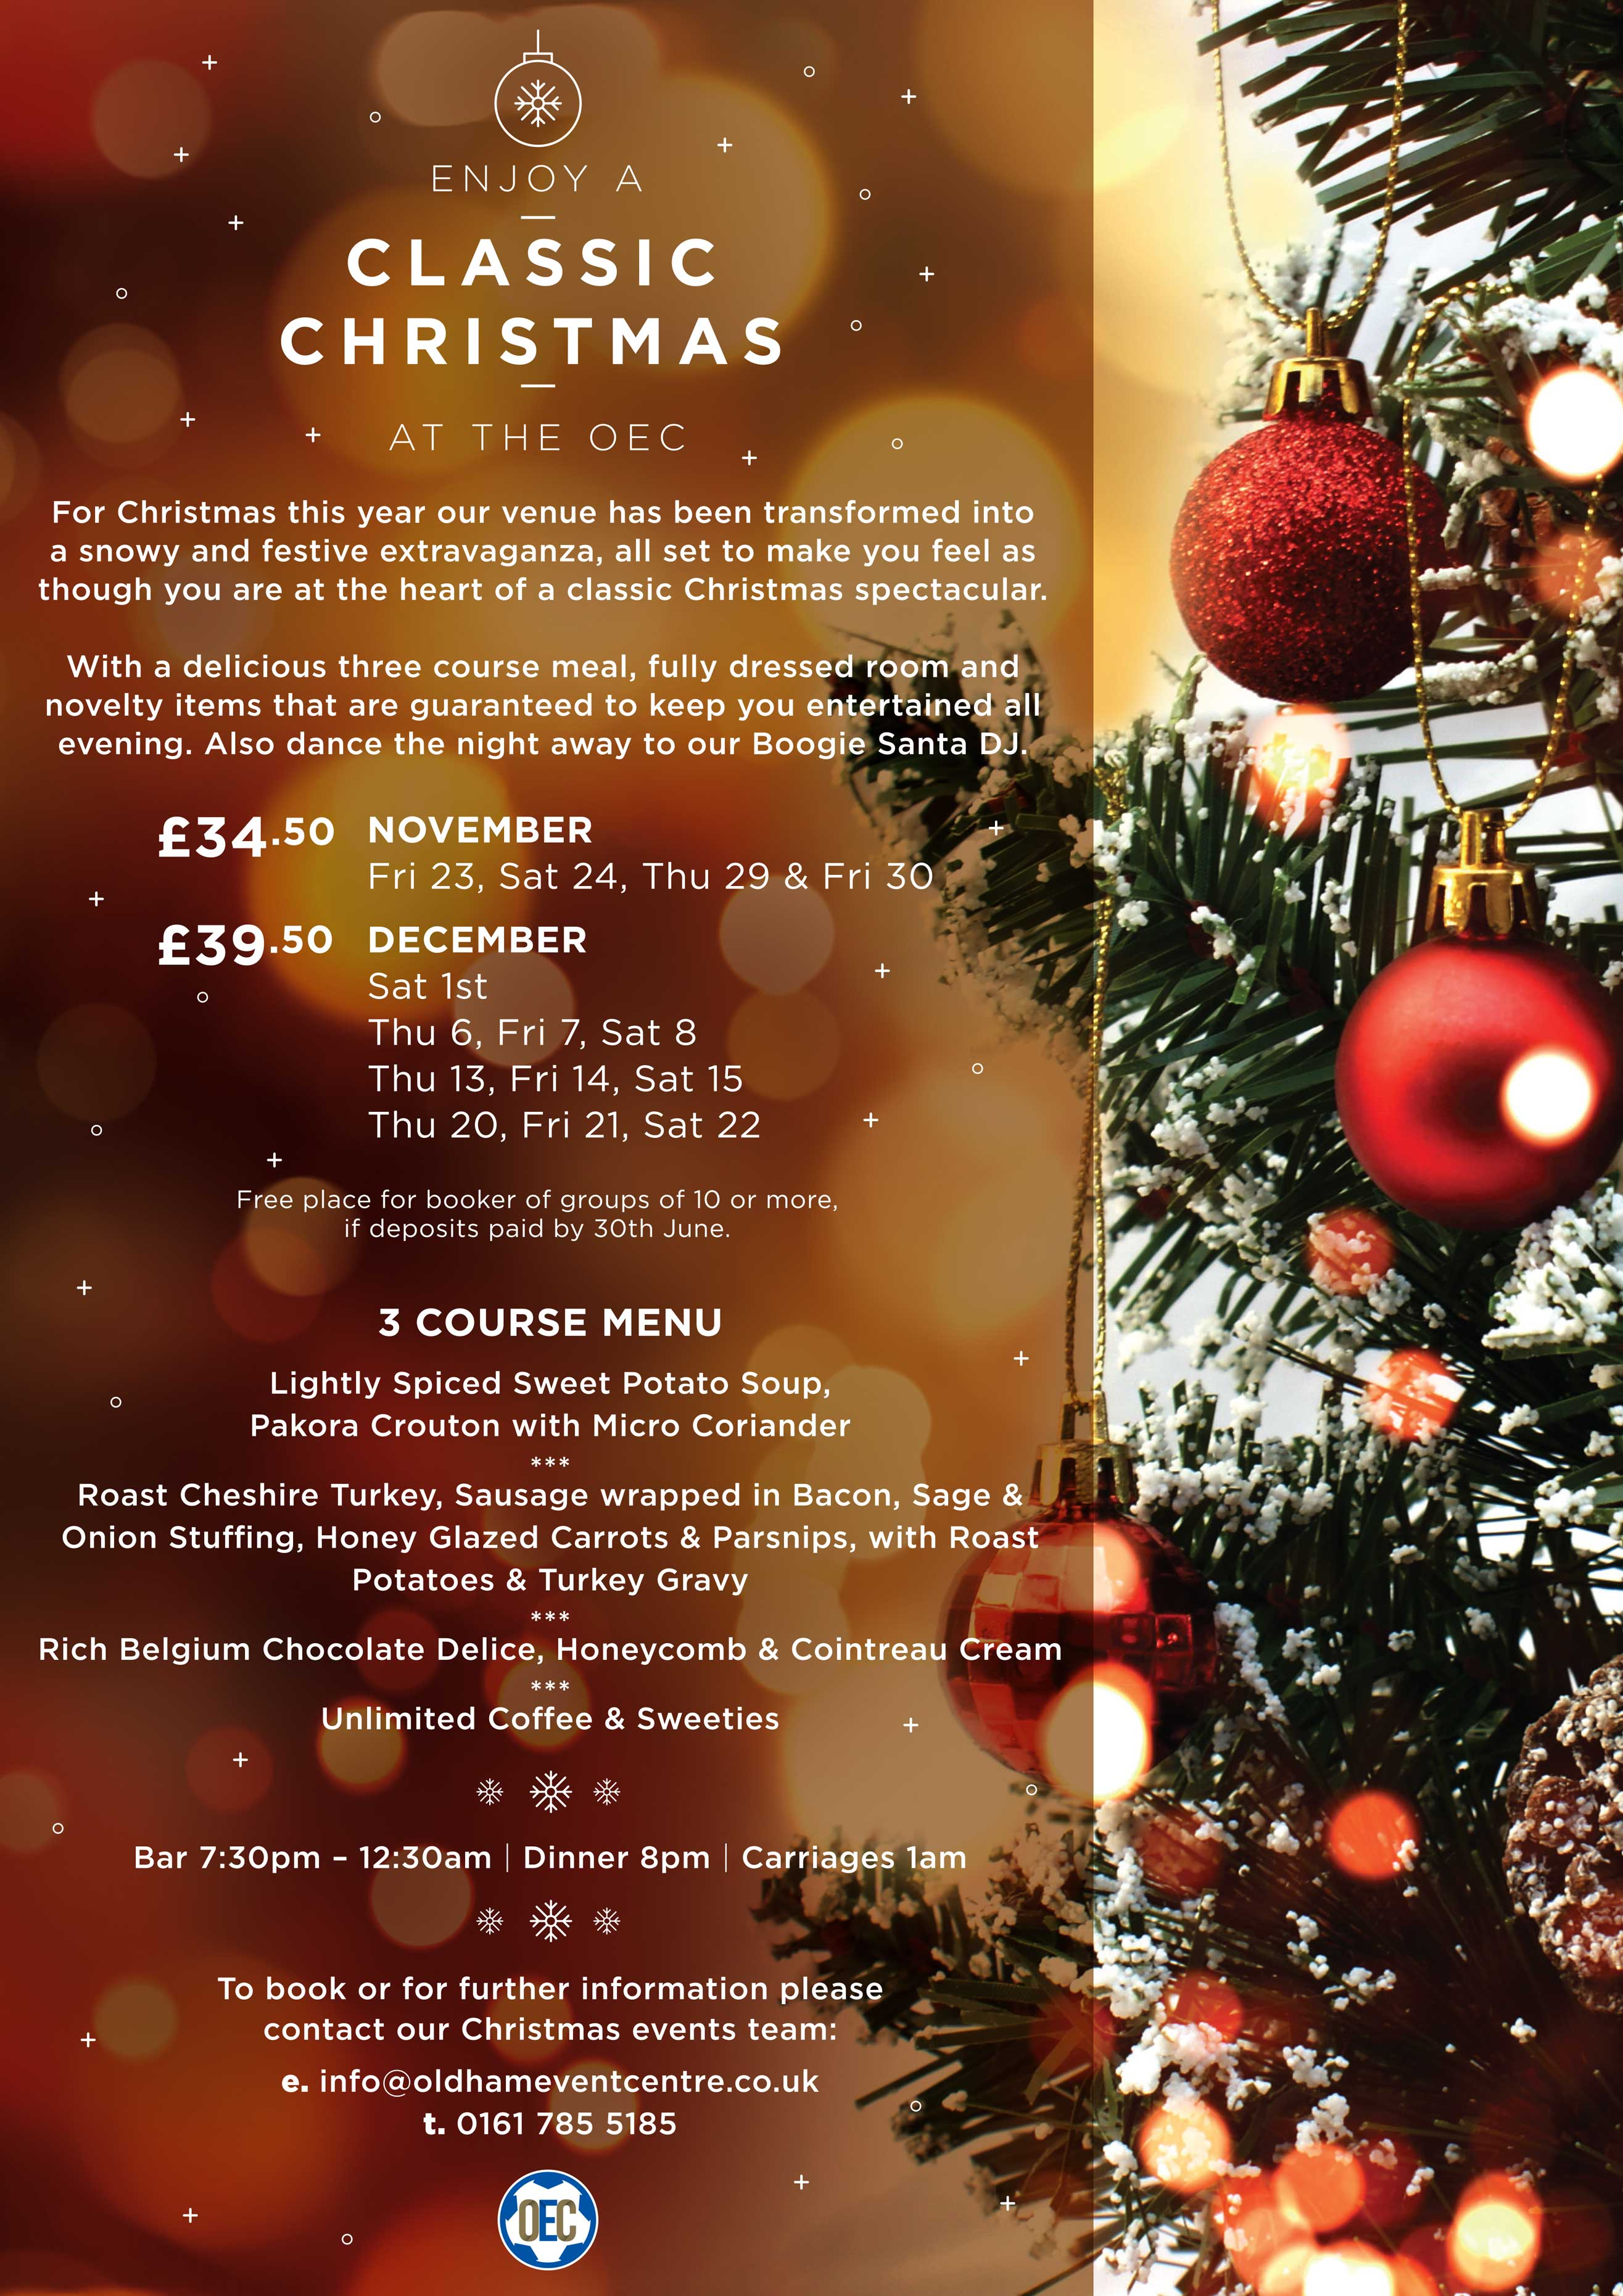 Classic Christmas at the Oldham Event Centre | Oldham Event Centre